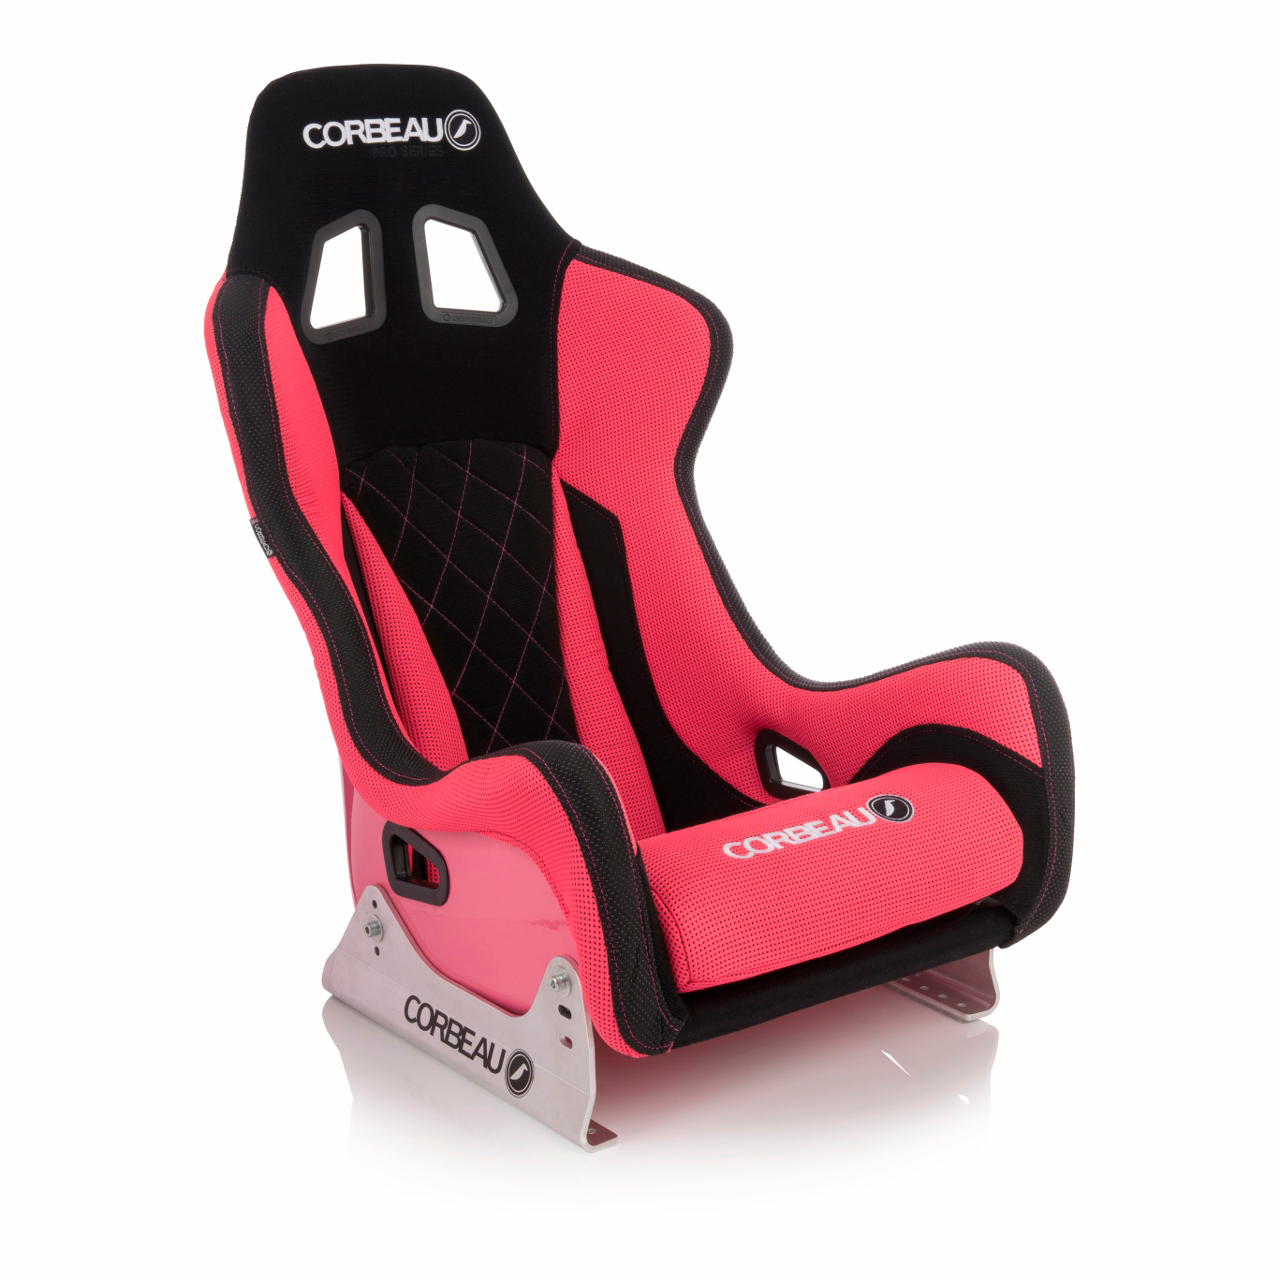 Corbeau Pro-Series X Elite Racing Seat with Red/Black Elite Upgrade